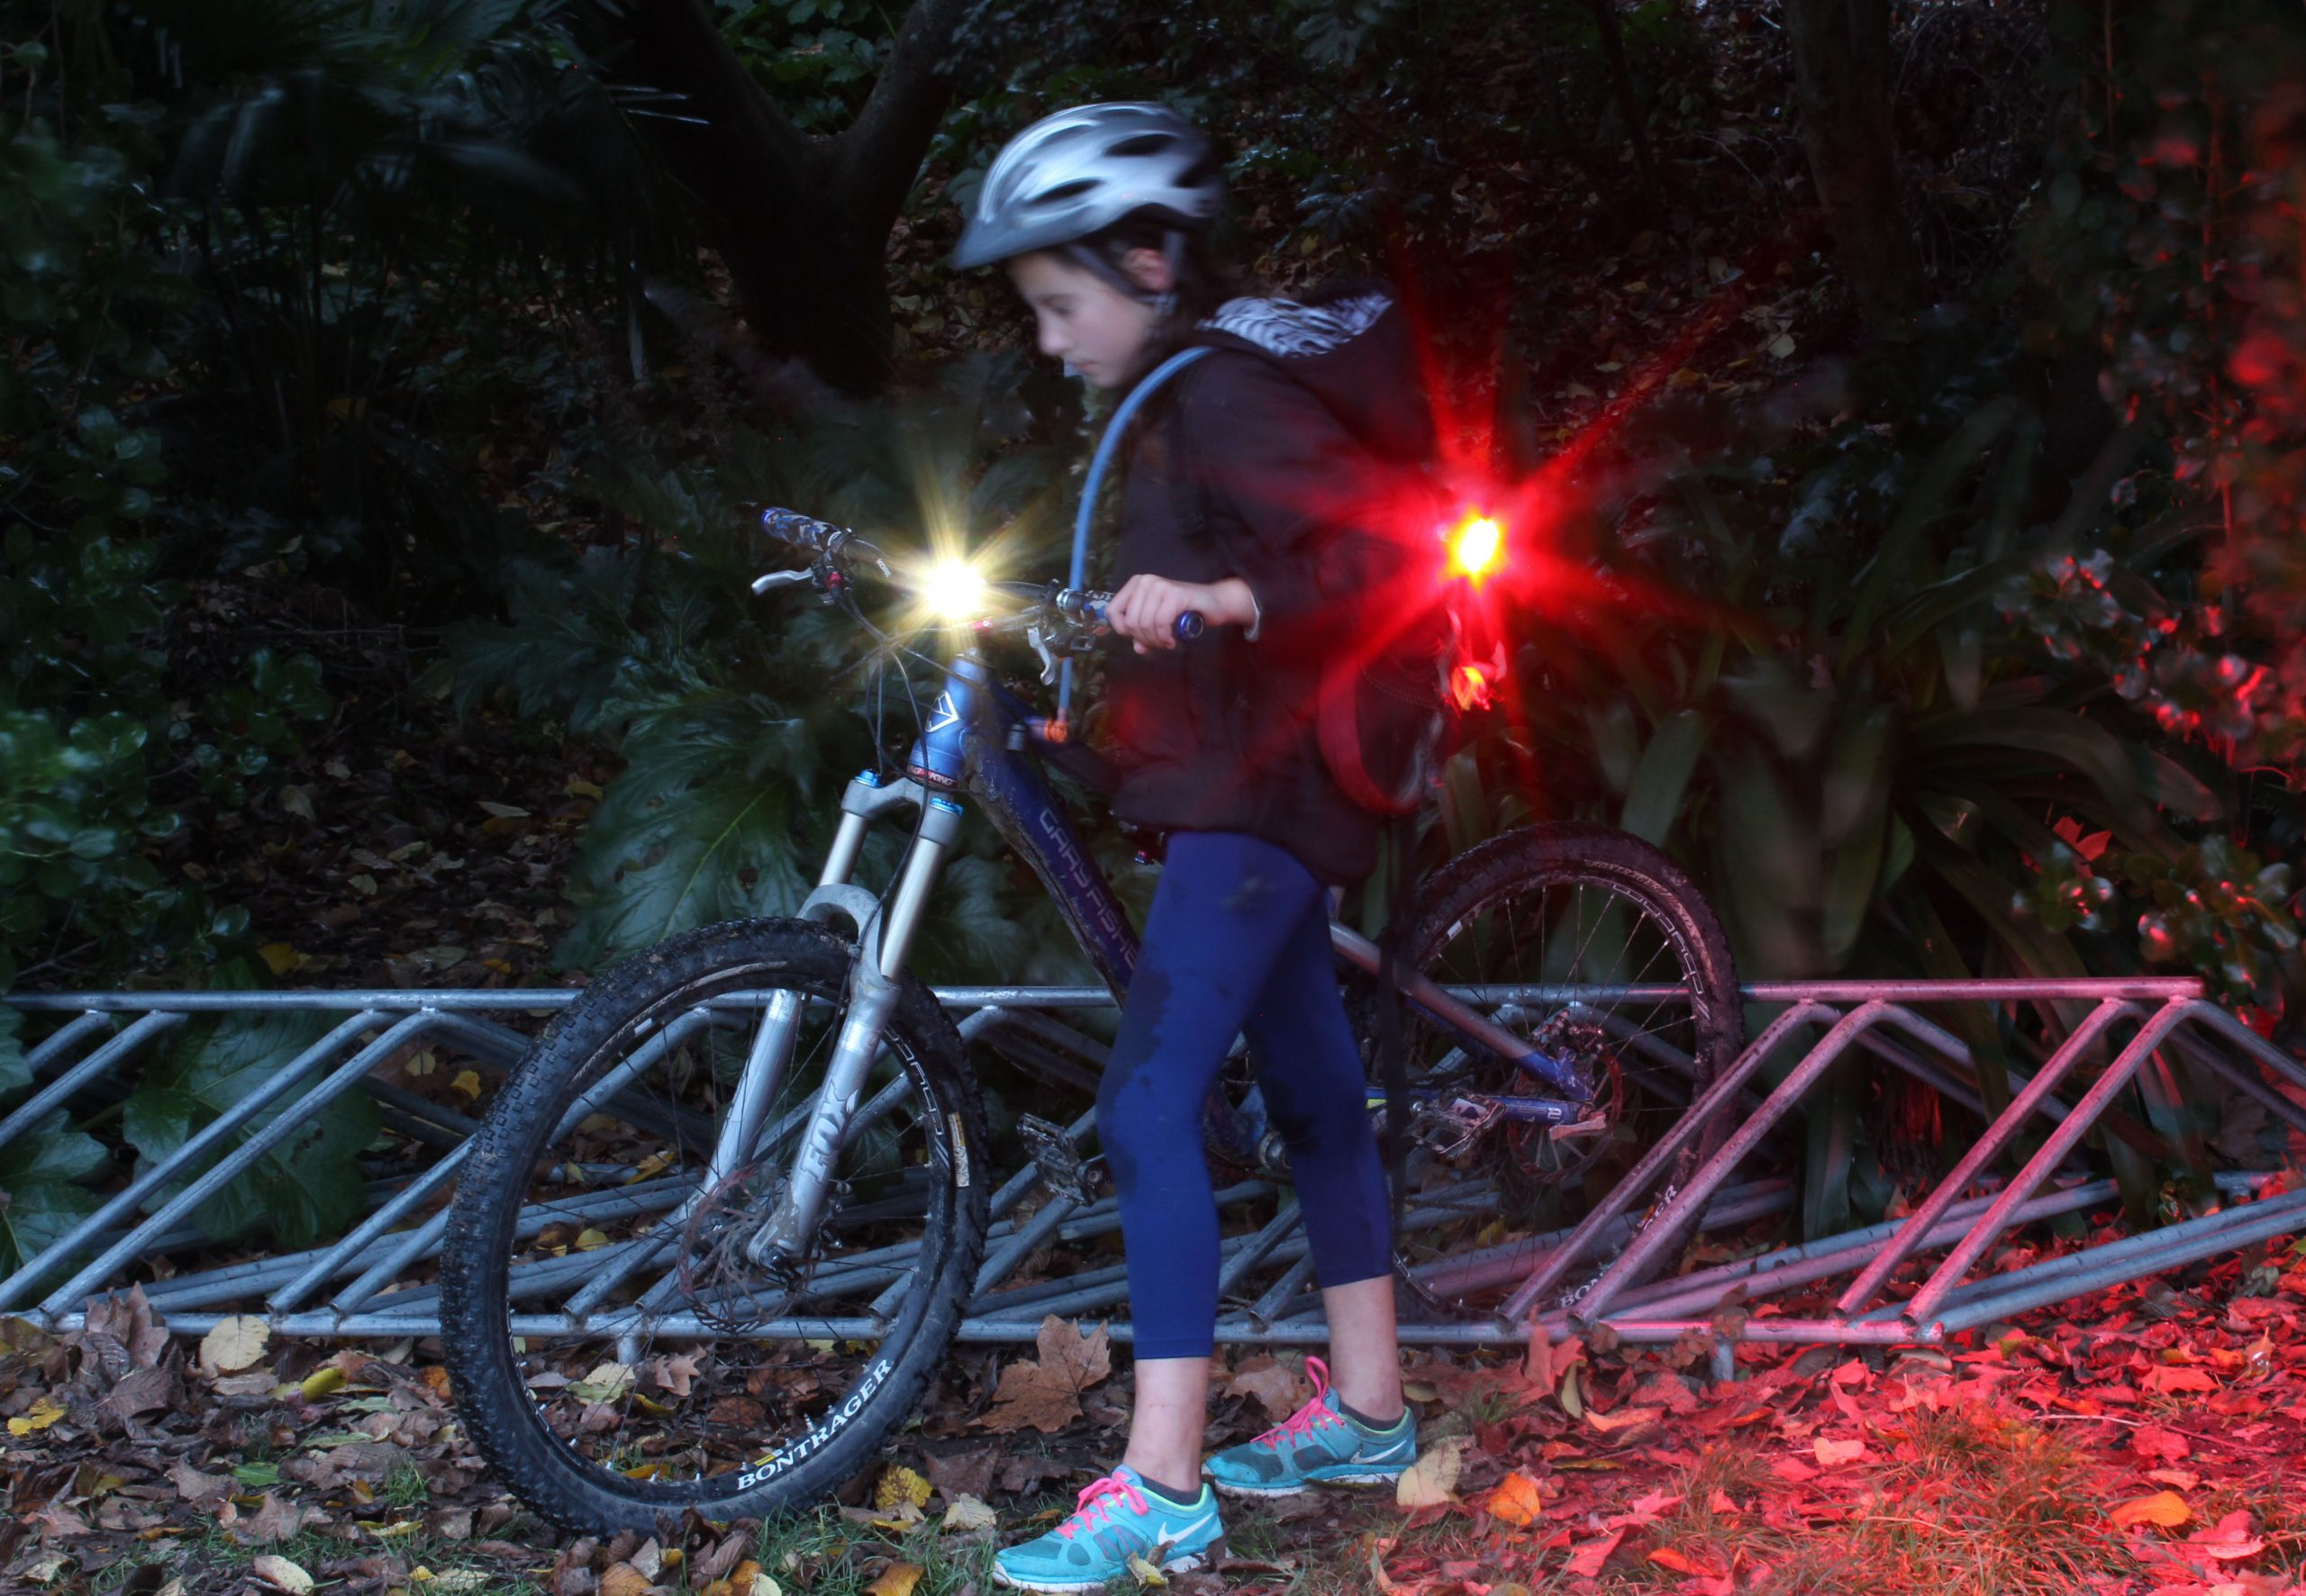 The Right Bike Lights for Town Riding